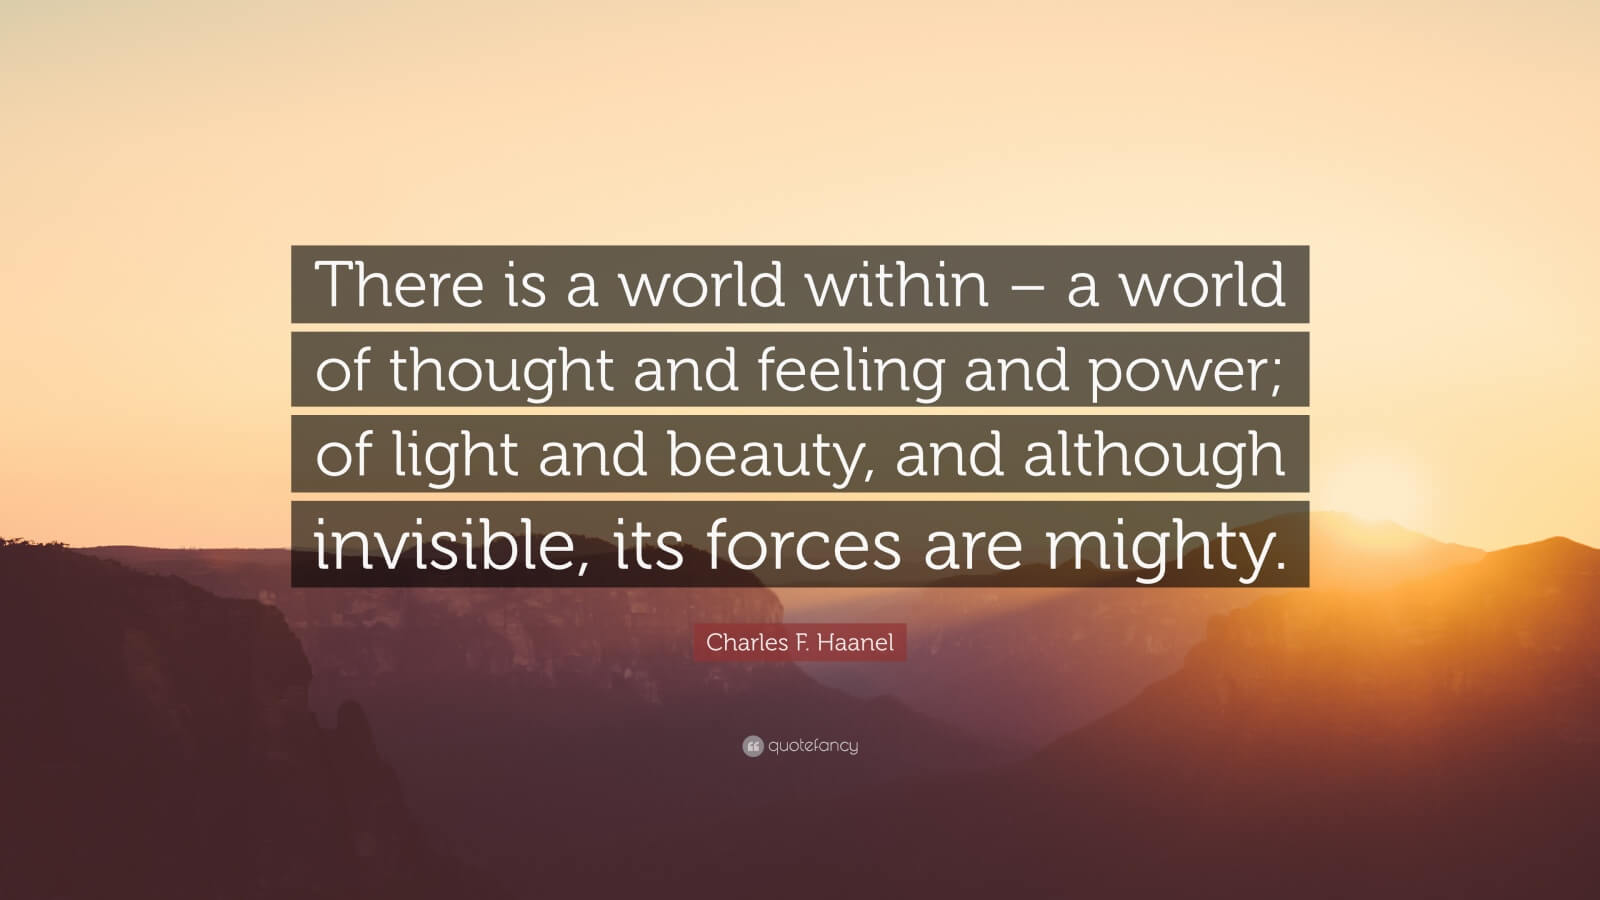 The world within of thought and feeling and power